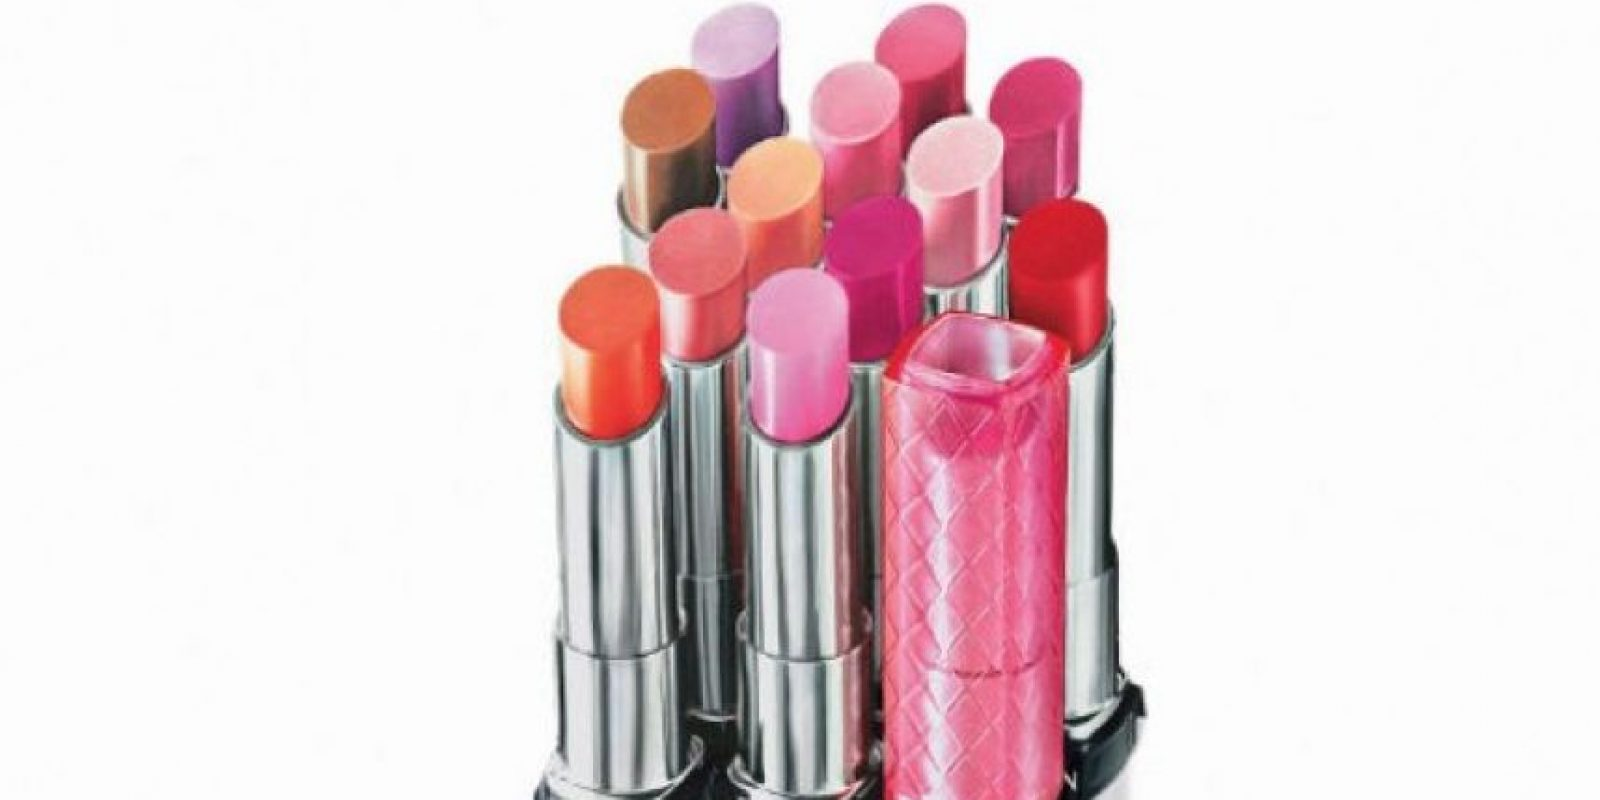 Protege tus labios del sol Tus labios también necesitarán de mucha humectación ahora que tu cuerpo enfrentará a las altas temperaturas. No dejes de darles brillo y color con los labiales de Revlon, Color Burst Lip Butter. publinews